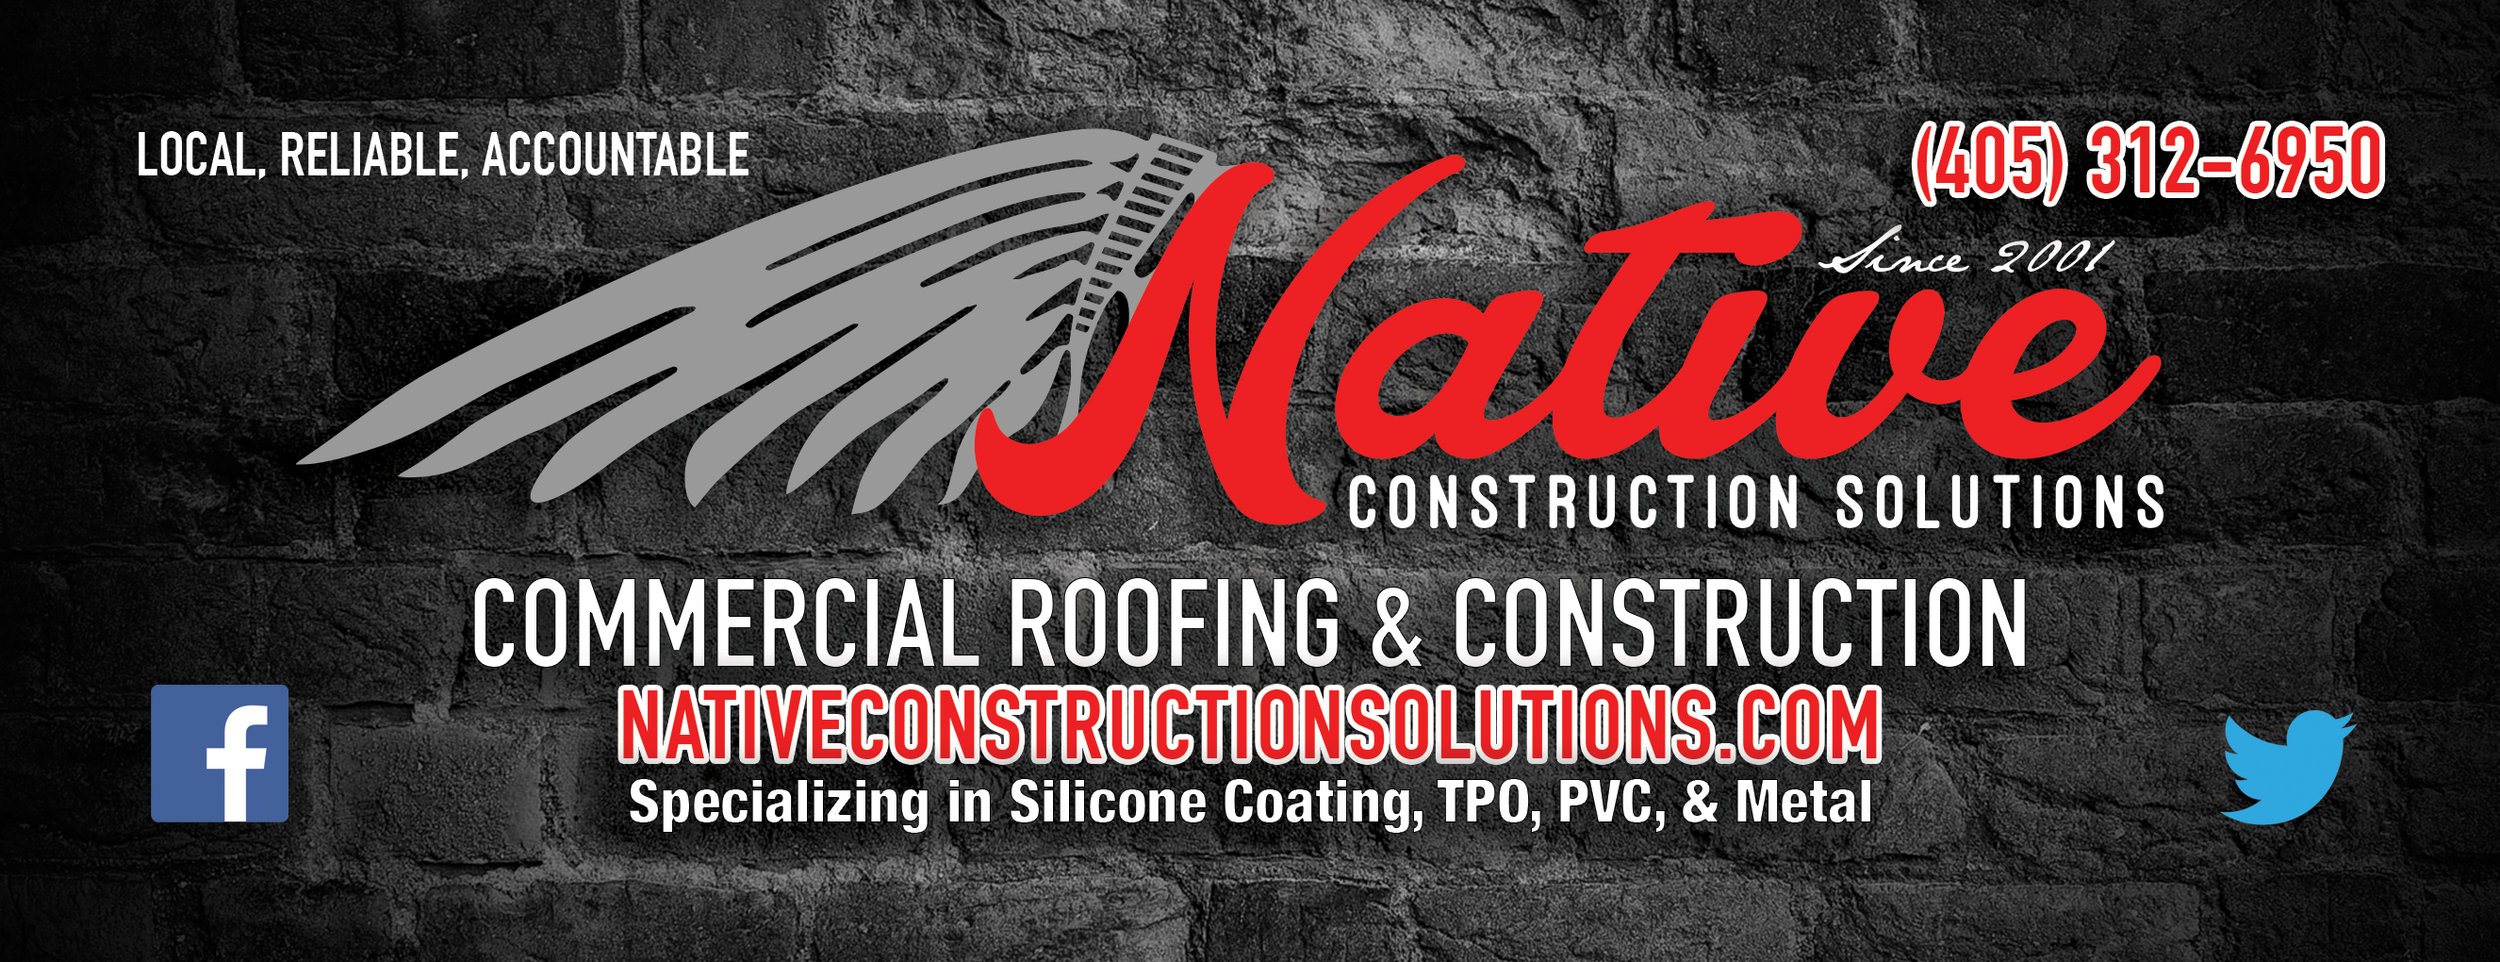 Native Construction Solutions 4'x12' Billboard